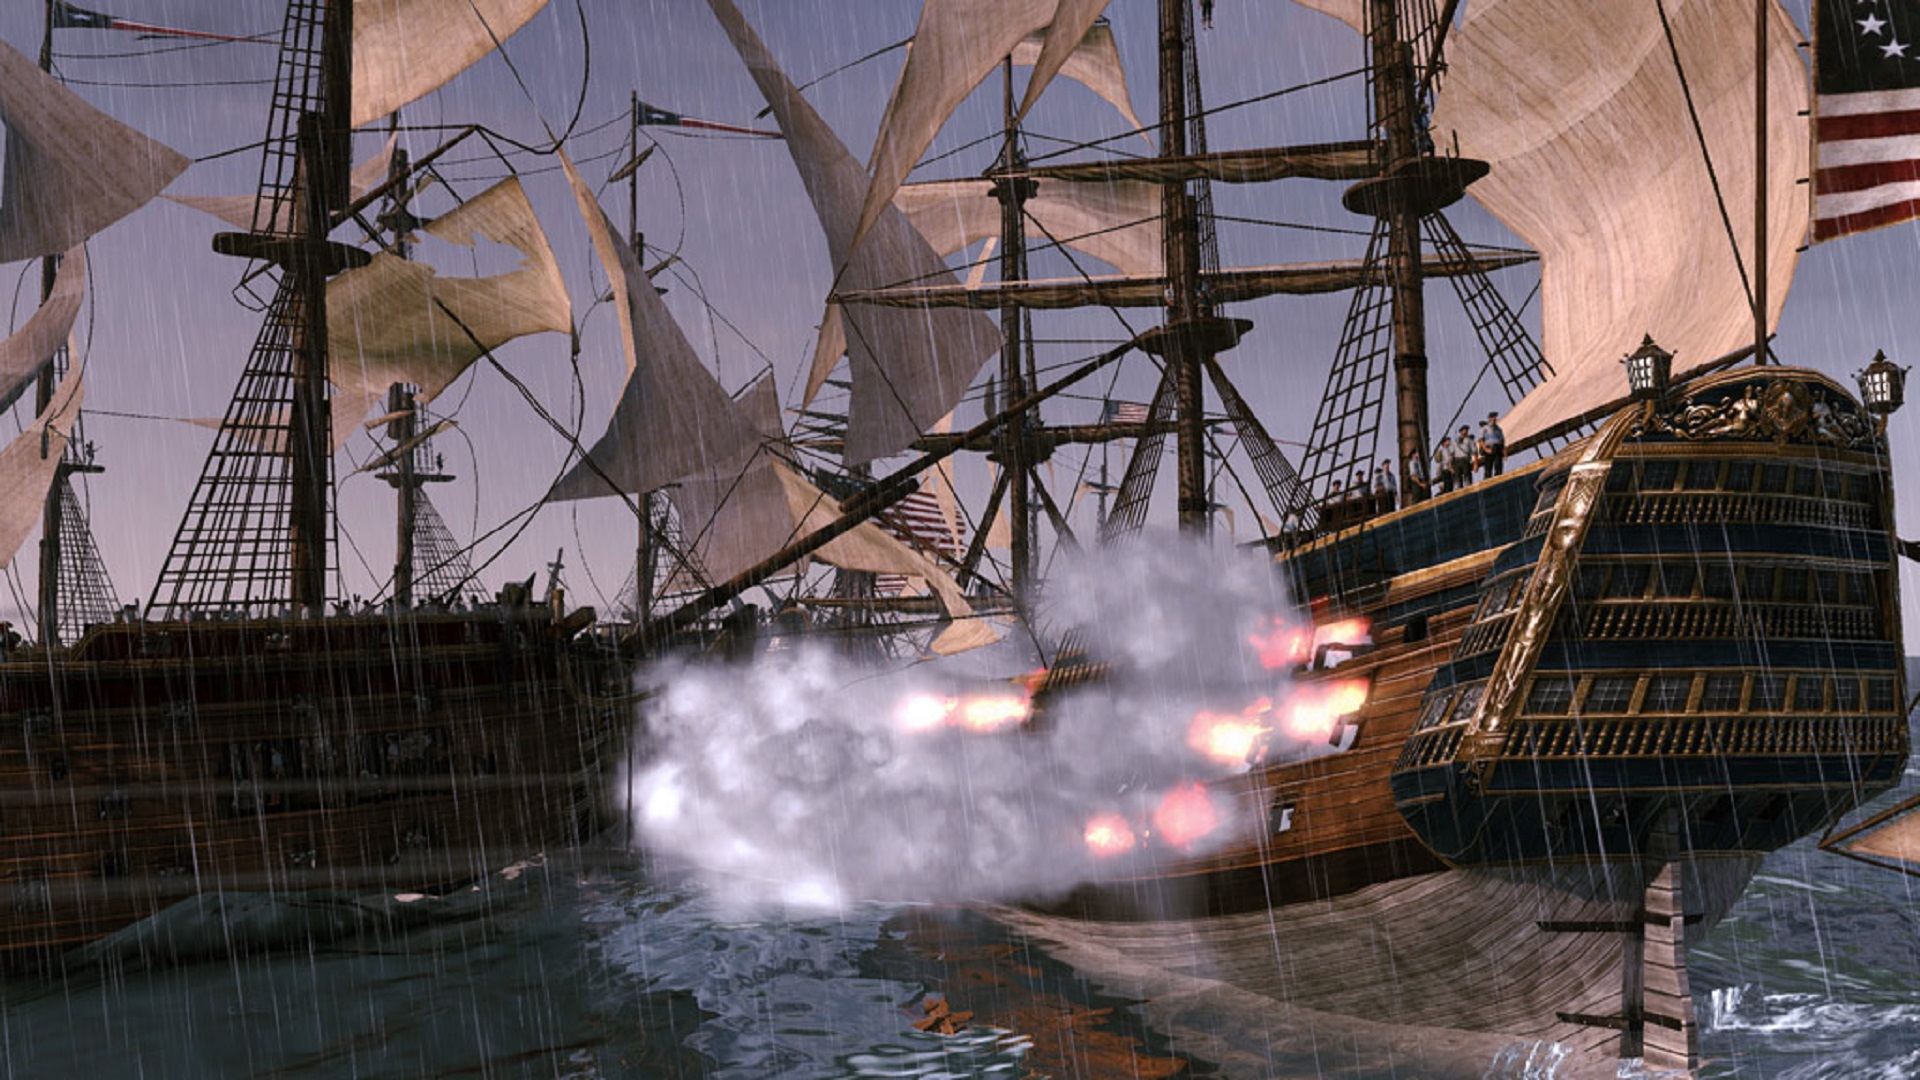 Total War fans are celebrating Empire: Total War's glorious naval battles